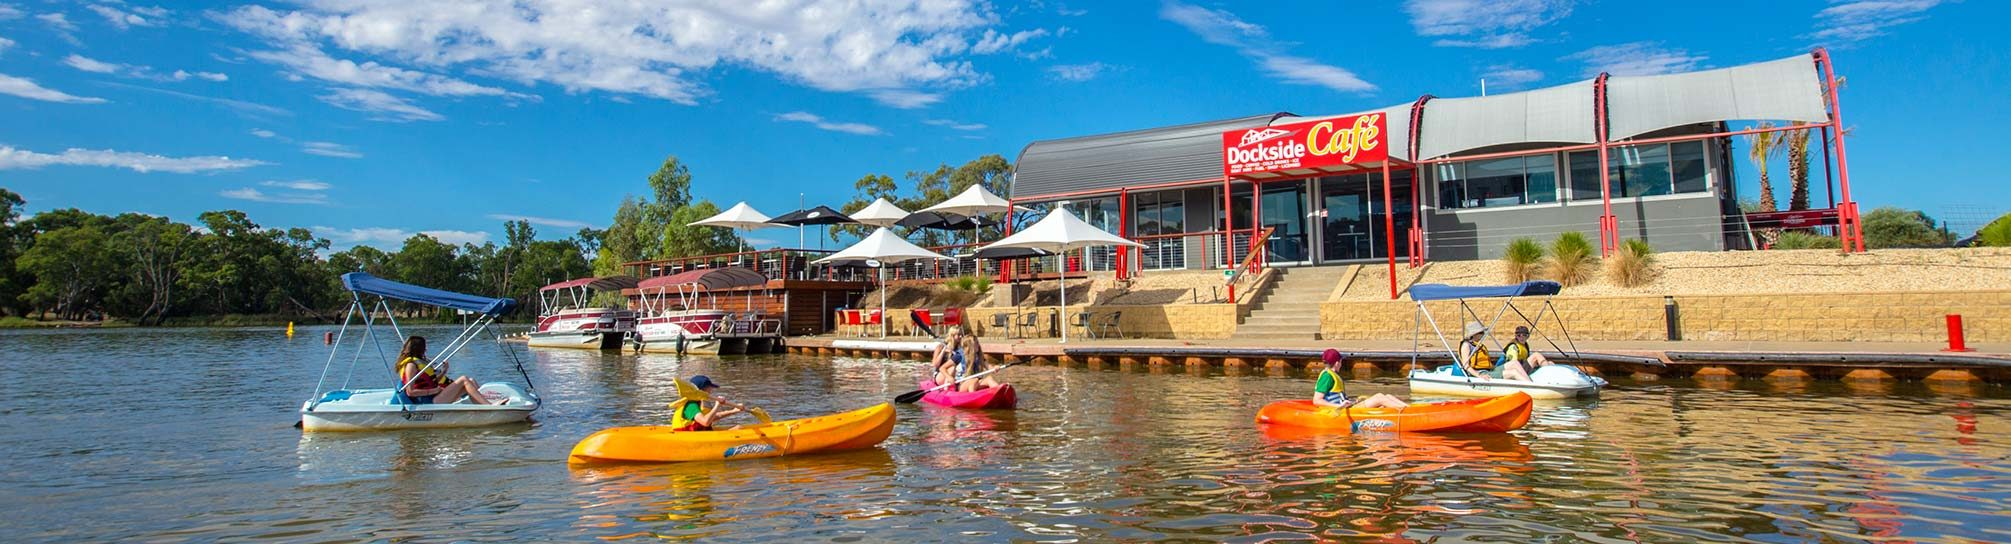 Mildura Dockside Marina watertoys